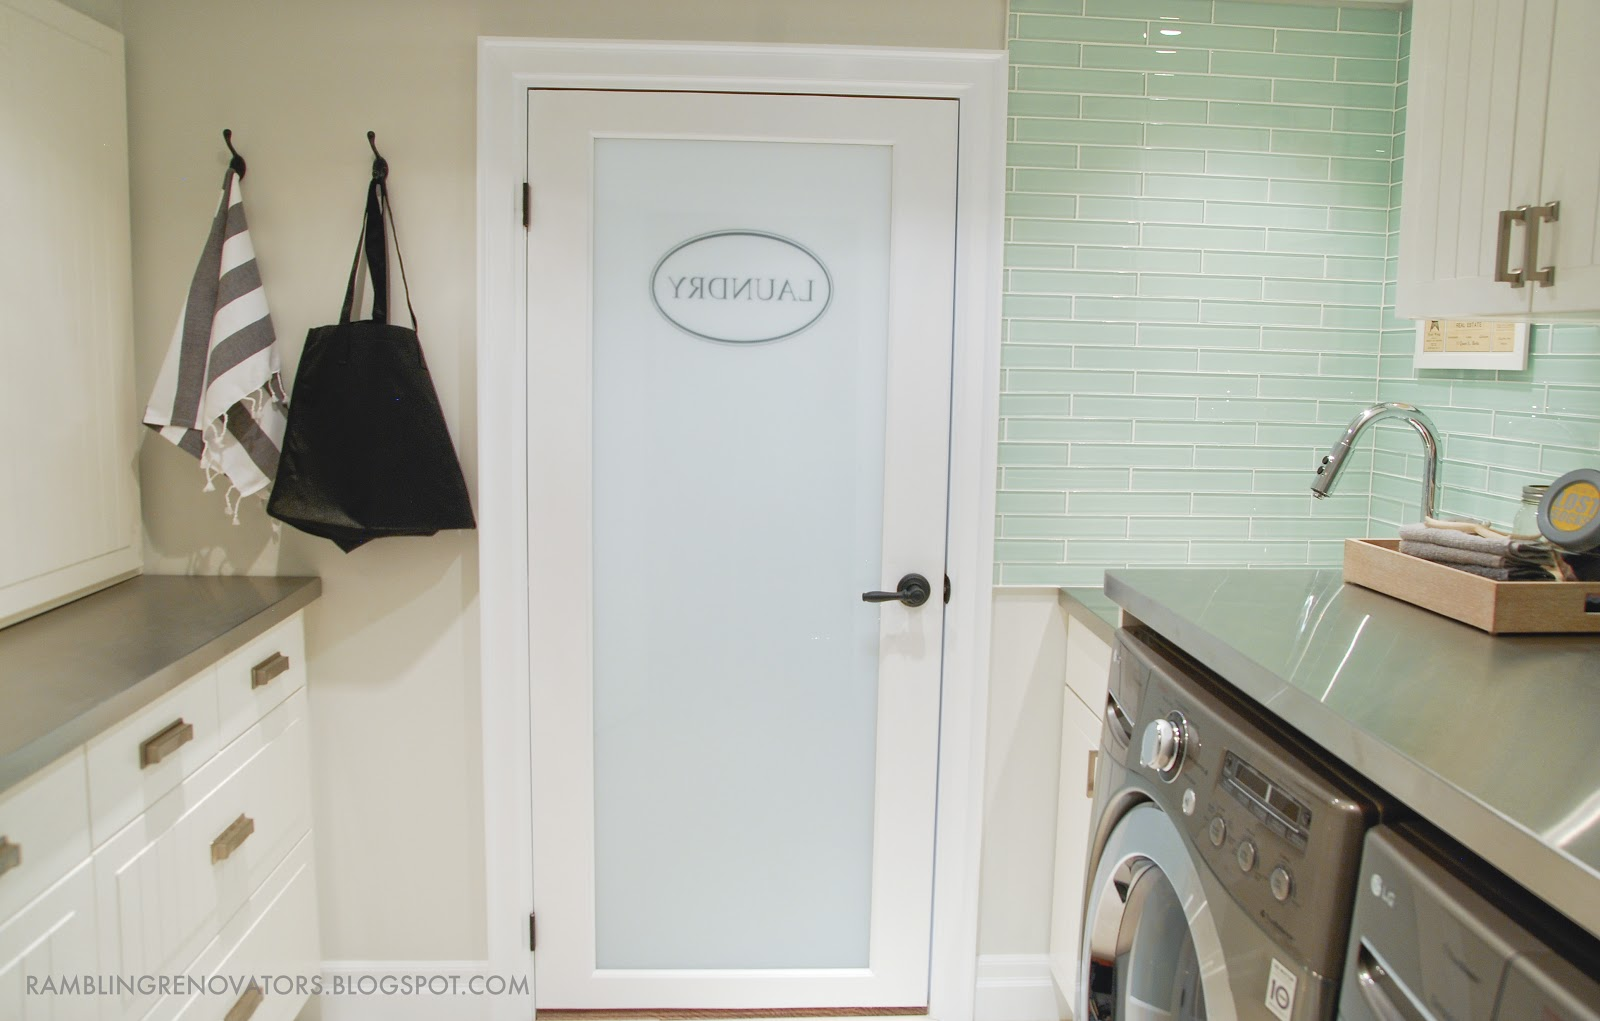 Laundry Room Ideas Ikea Laundry Room Renovation Tips Rambling Renovators